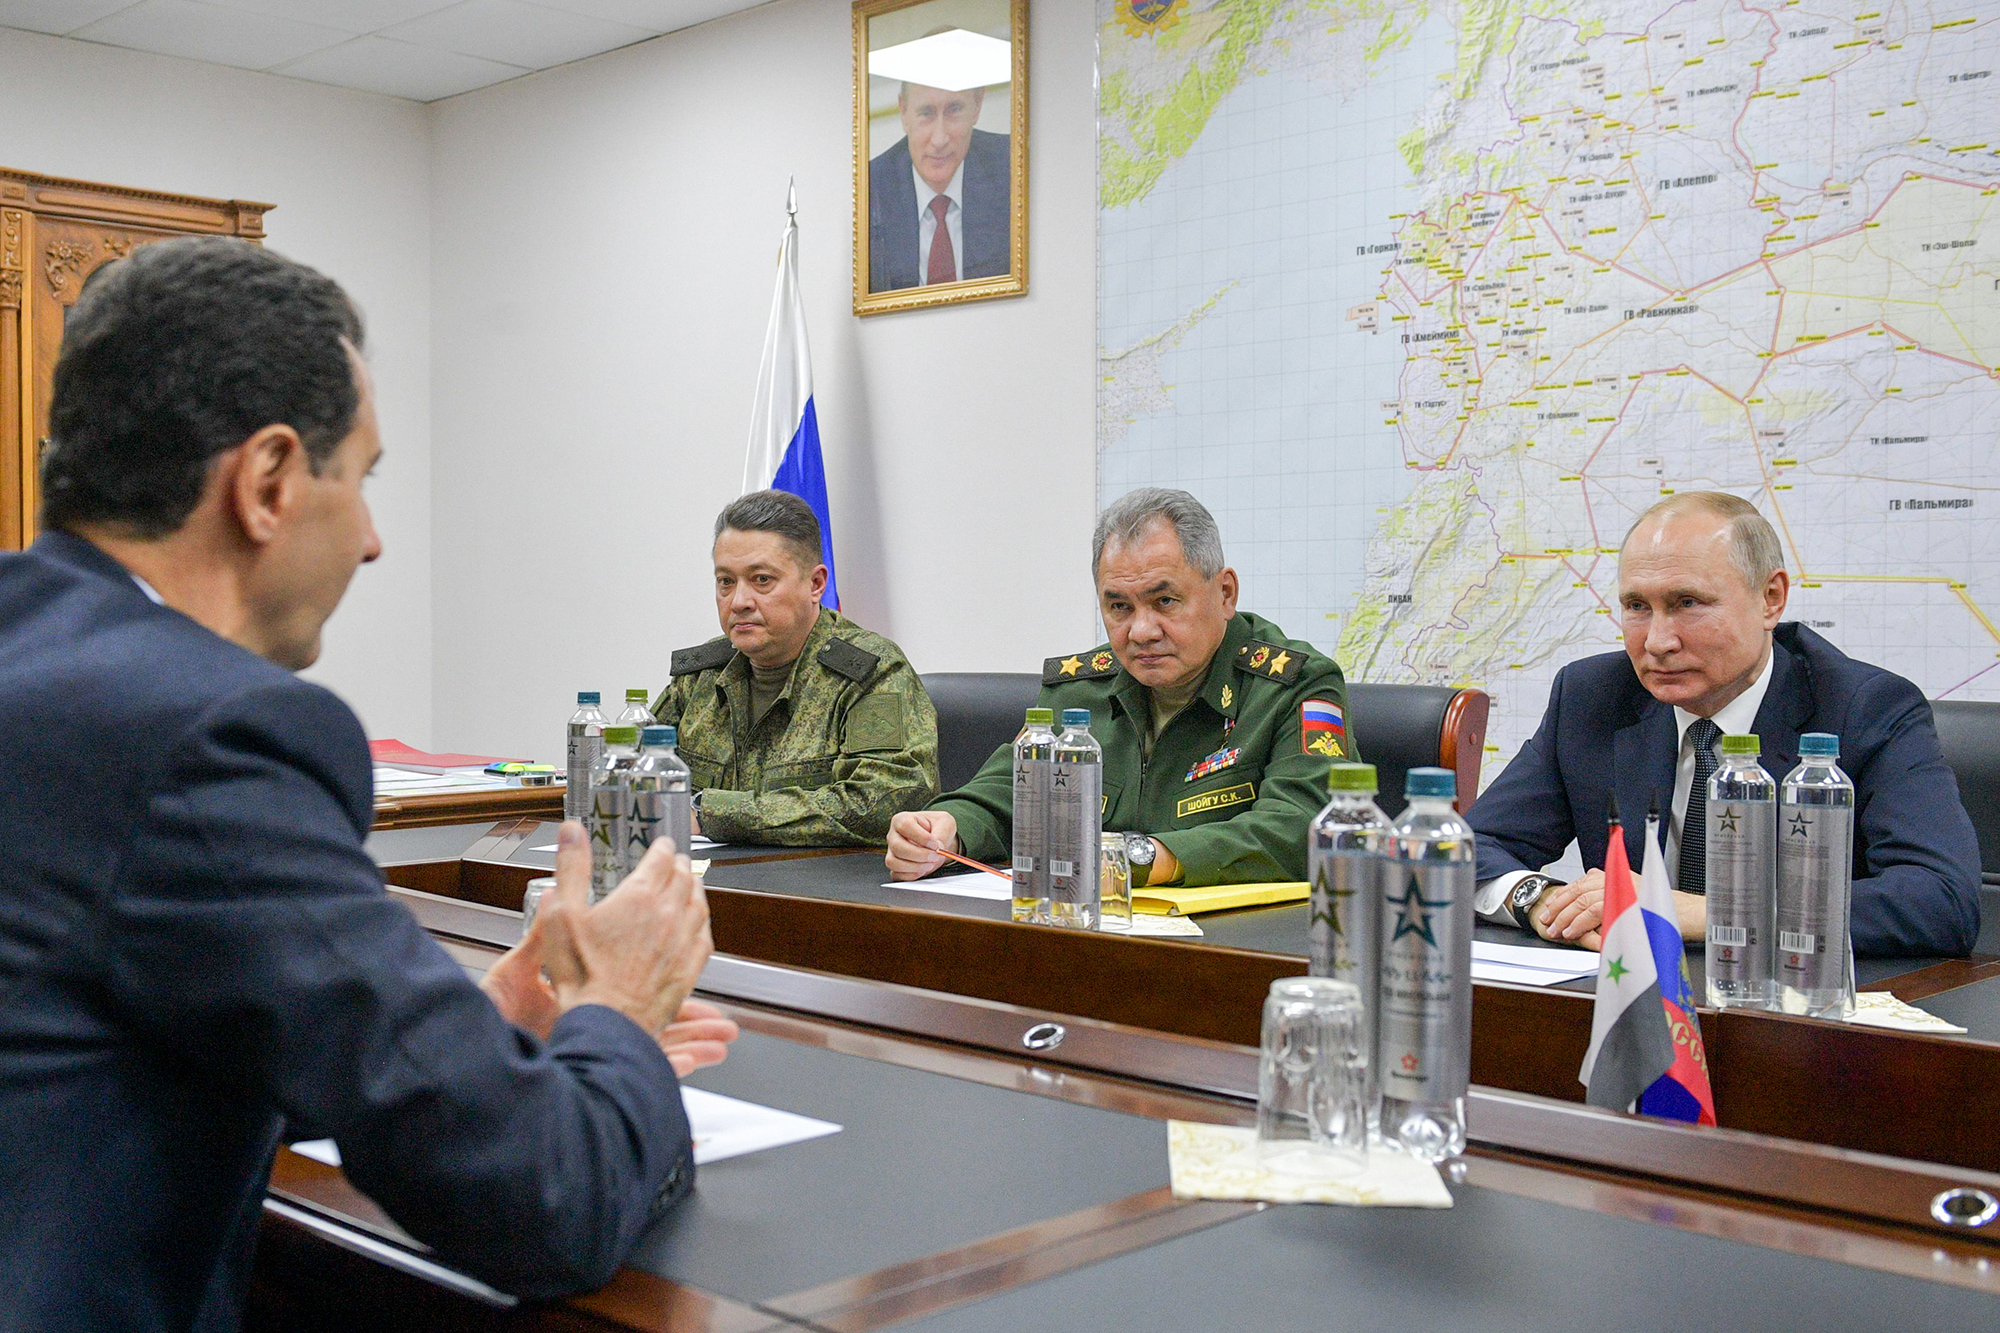 Syria's President Bashar al-Assad (left), Russia's President Vladimir Putin (right), Minister of Defense Sergei Shoigu (second right), and Lieutenant-General Alexander Yuryevich Chaiko (third right) during a meeting.